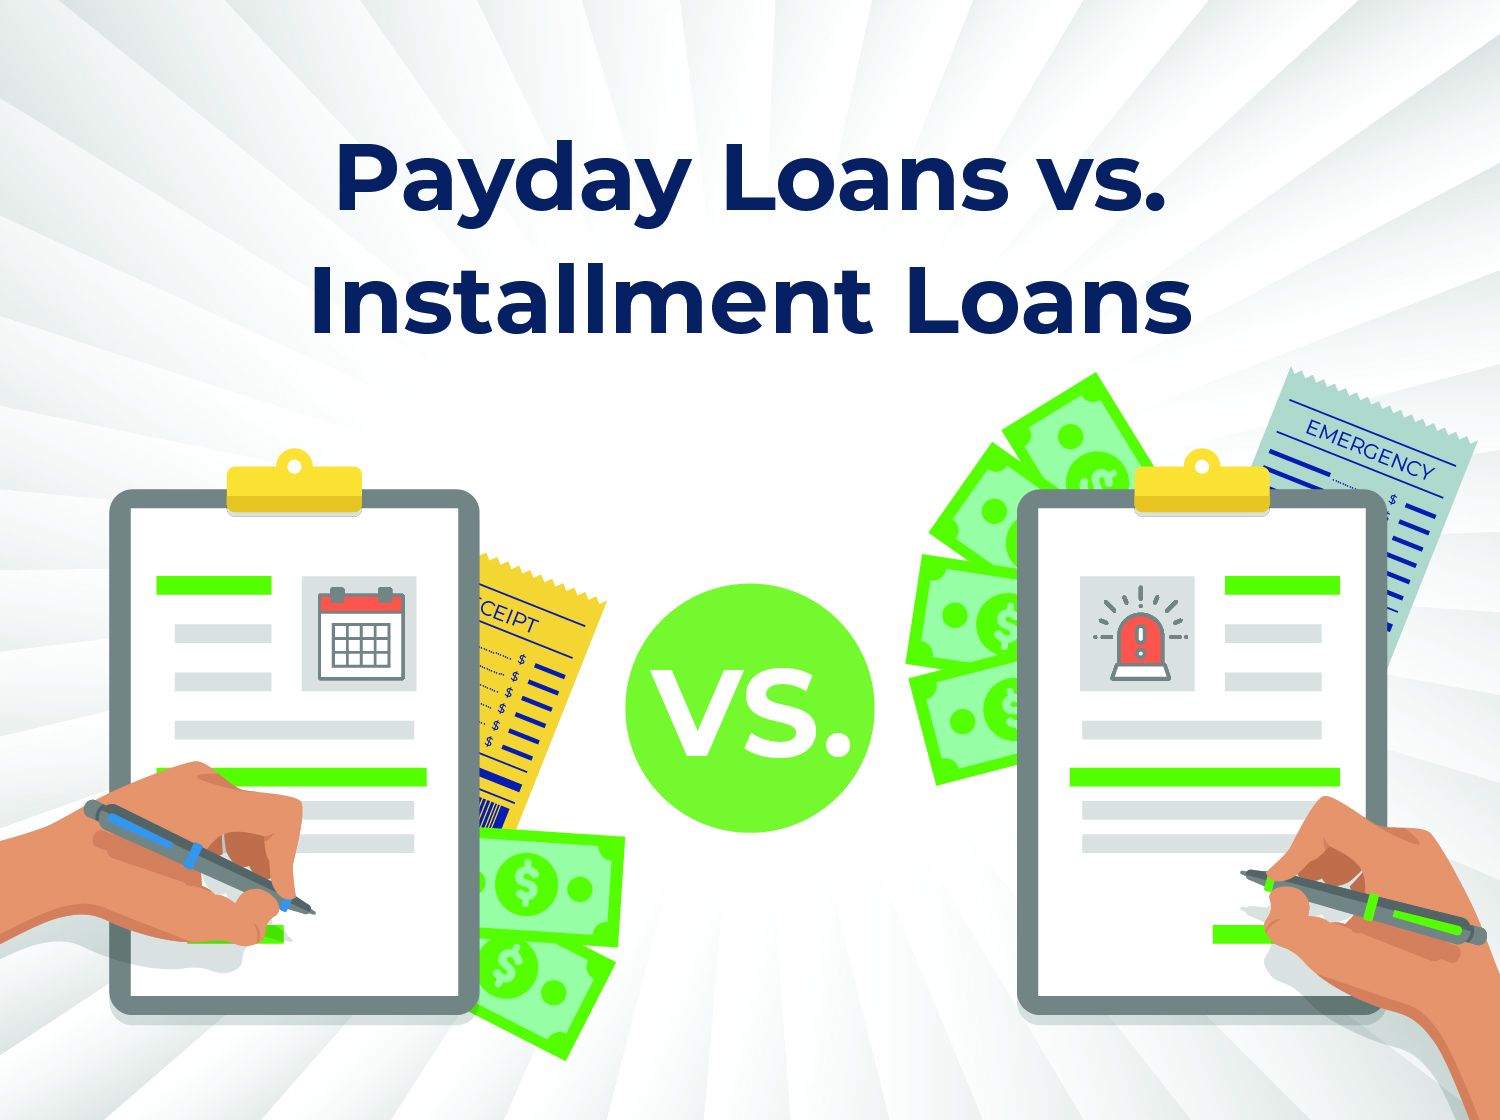 Vector illustration demonstrating the difference between payday loans vs installment loans